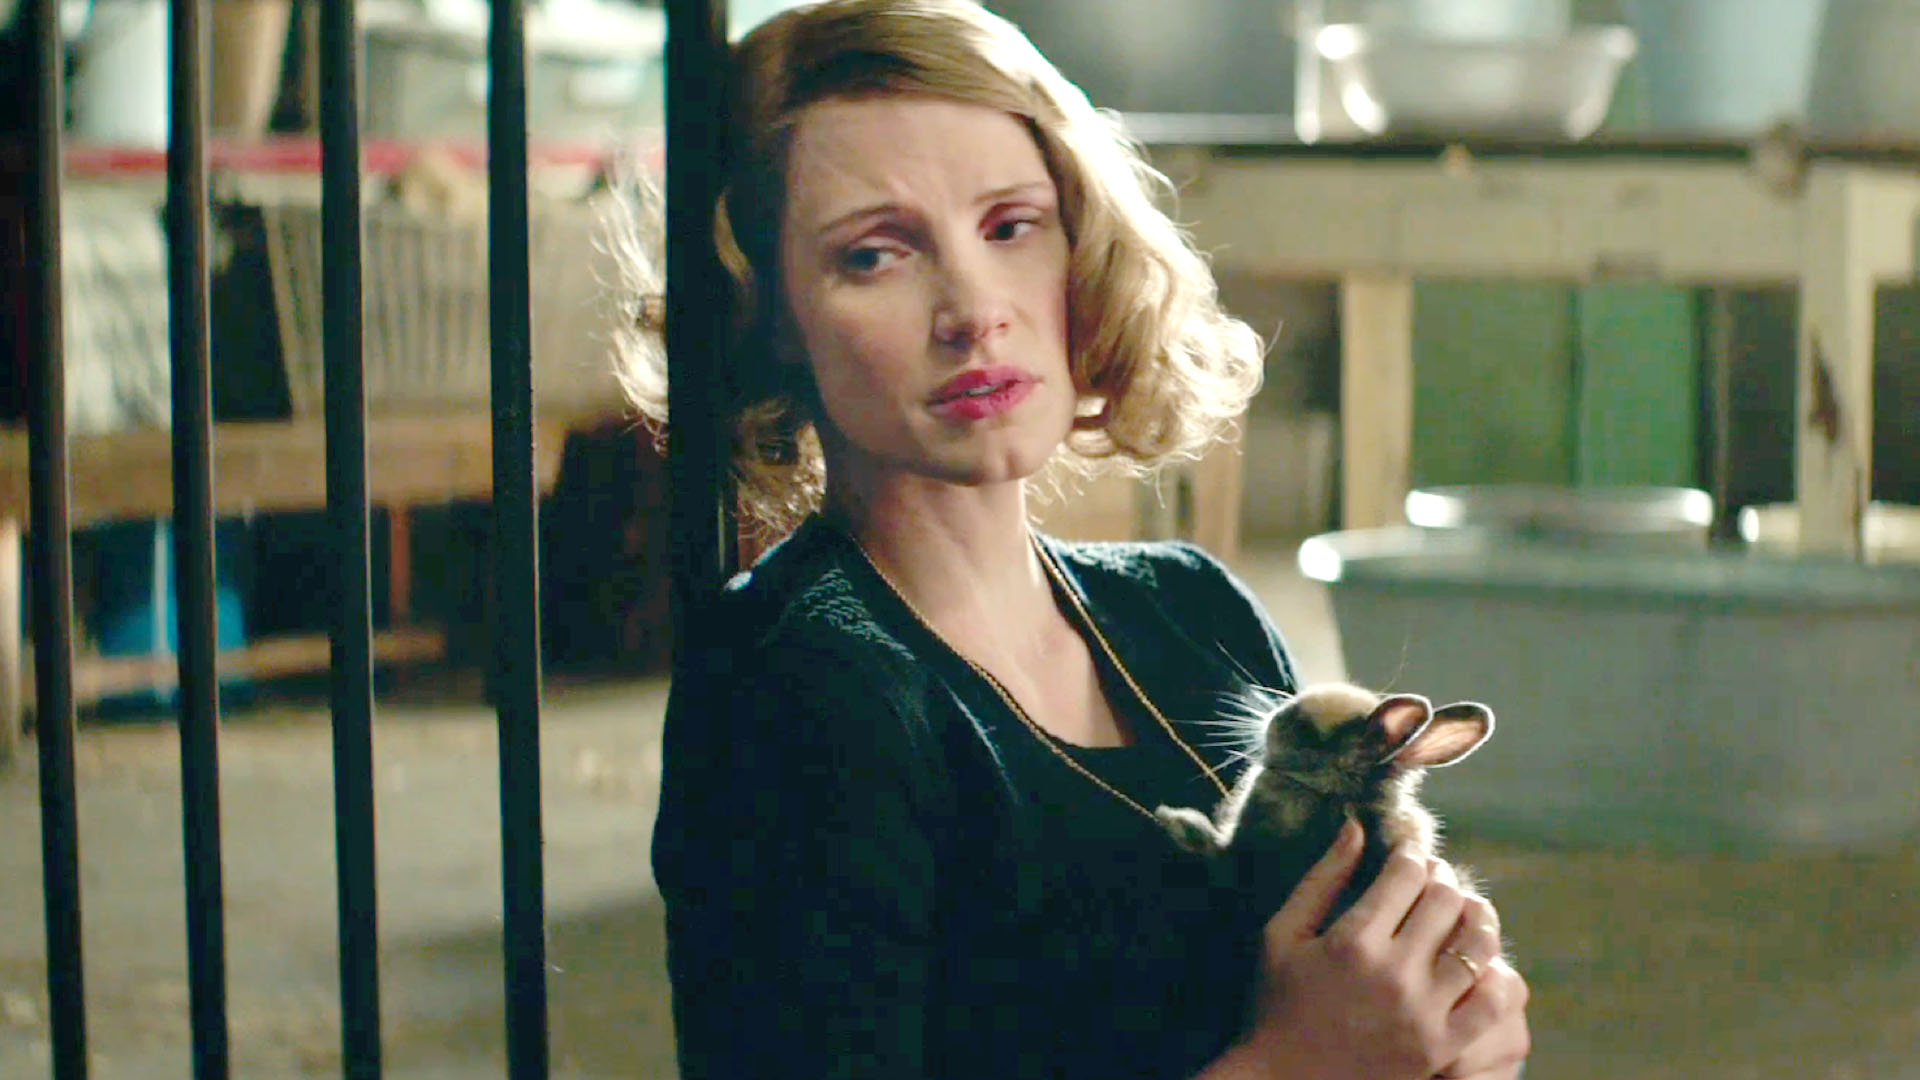 'The Zookeeper's Wife' is limited by its choice of perspective